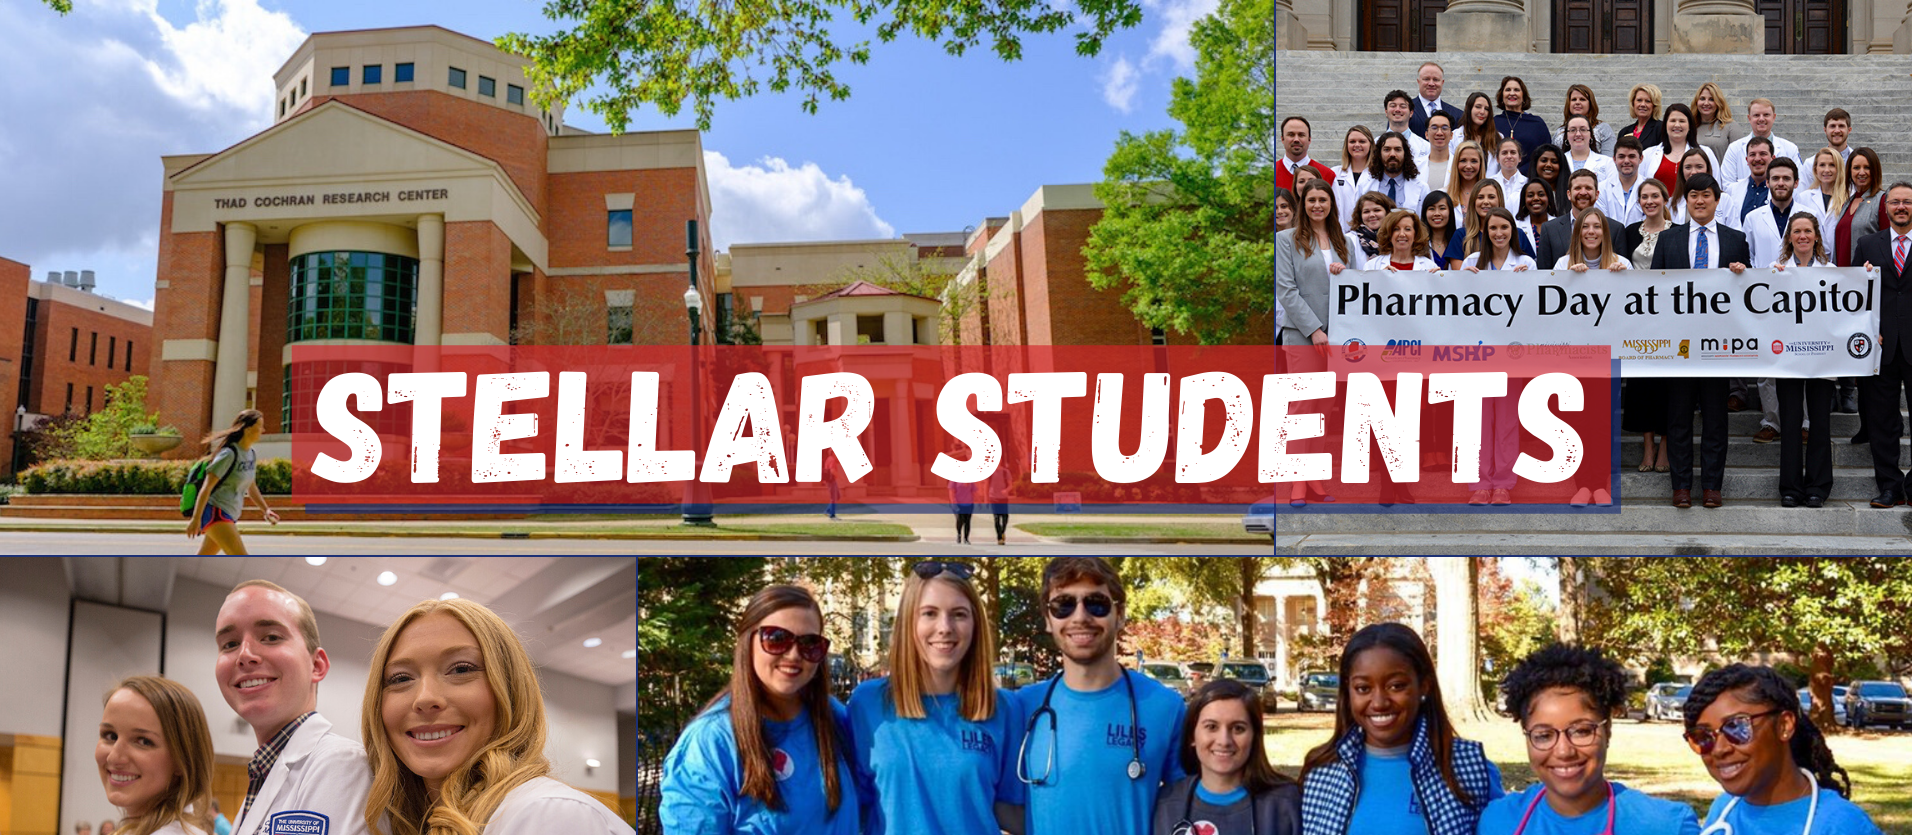 Stellar Students banner with various pictures of student pharmacists and pharmacy building.